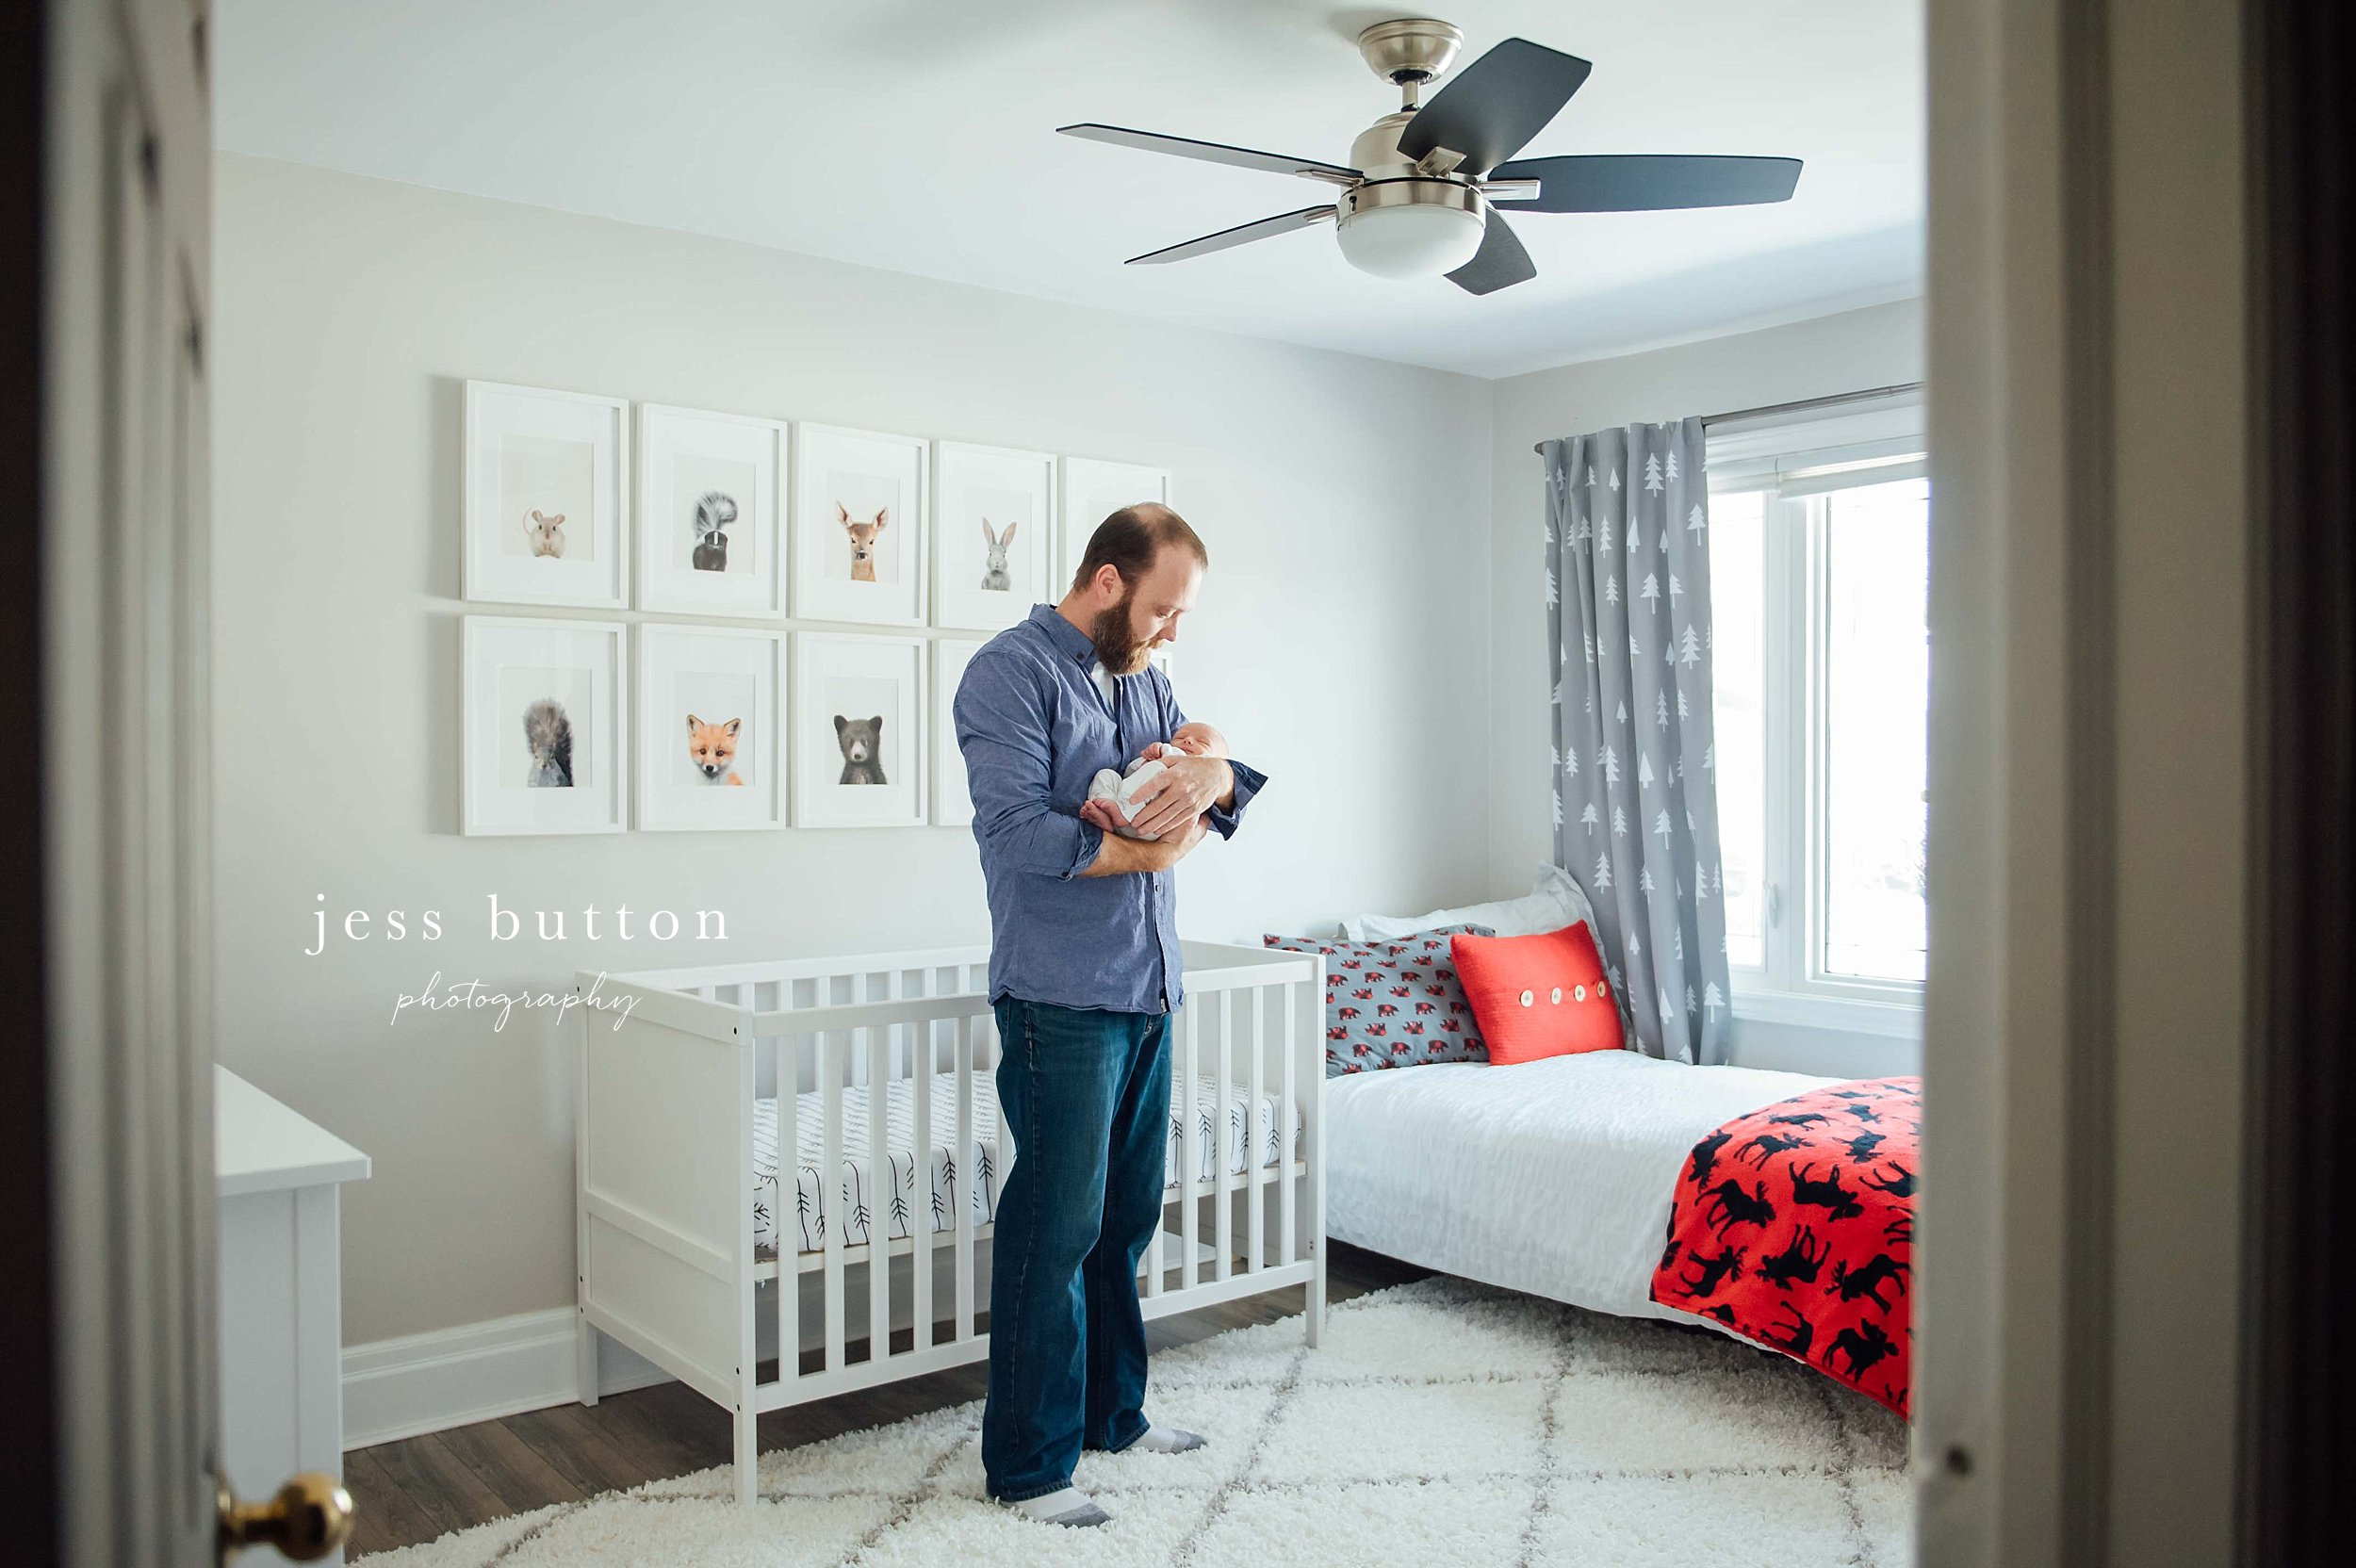 grey nursery with animal prints - new dad with baby - lifestyle photographer